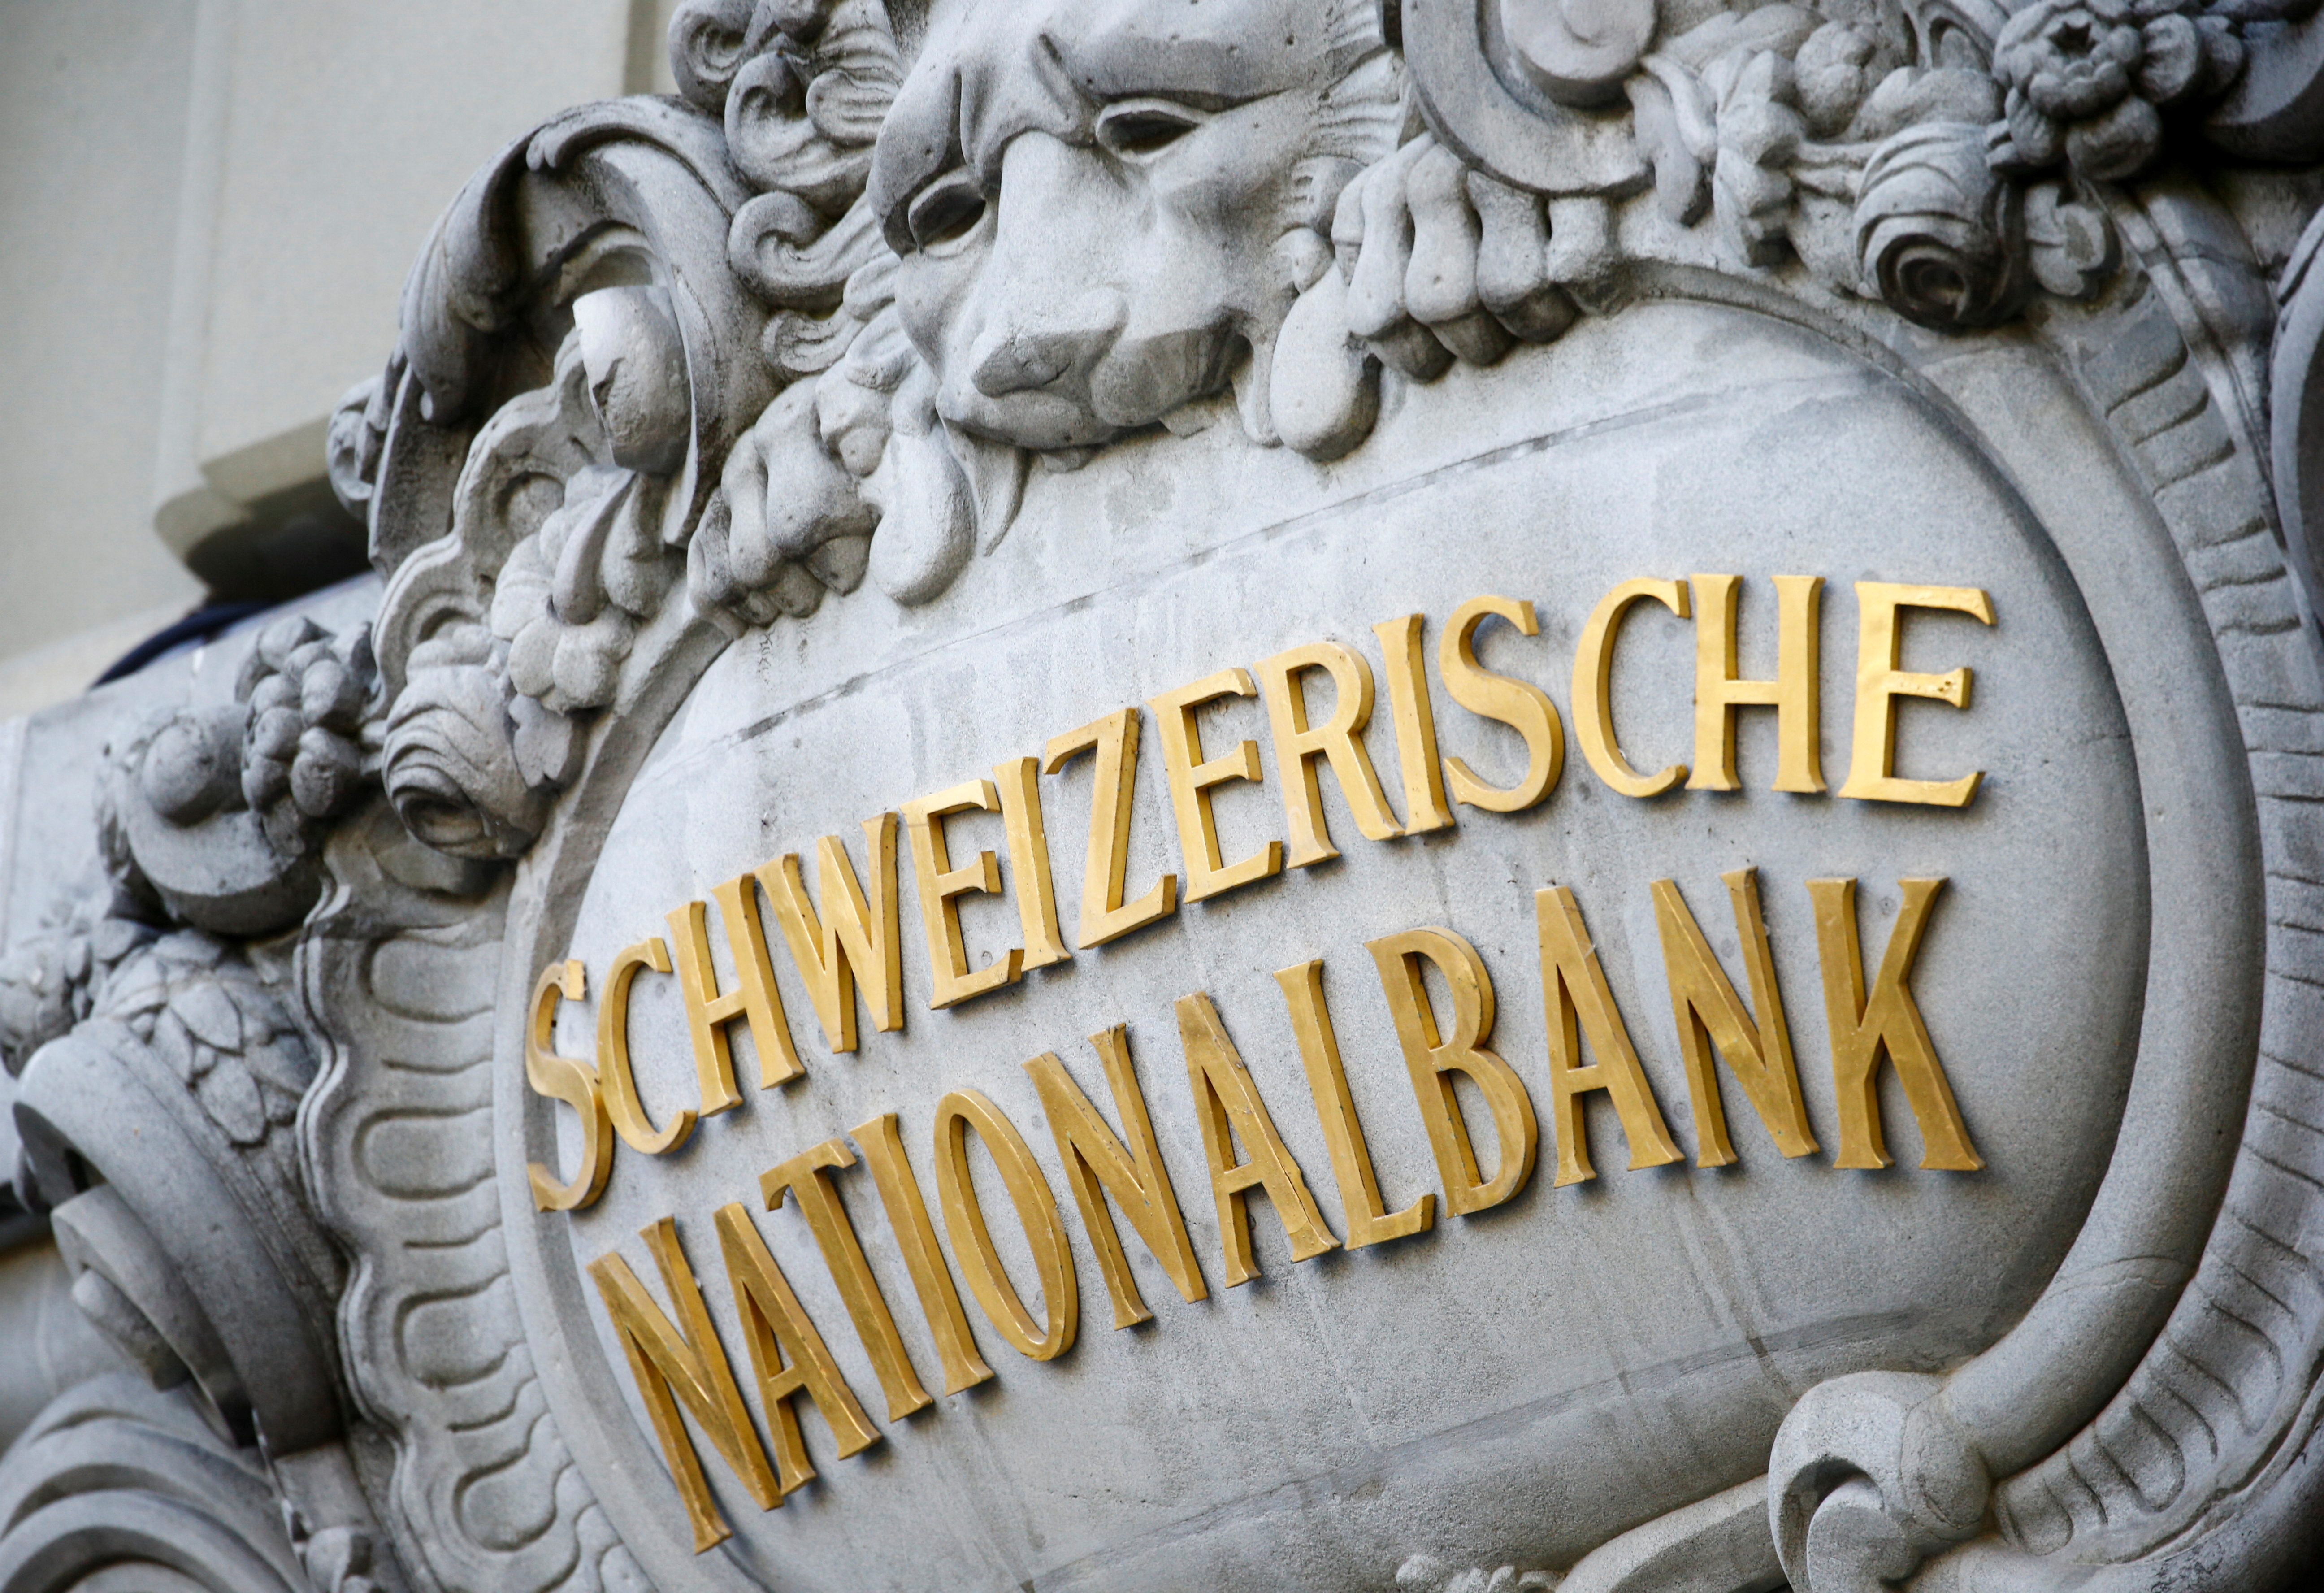 The Swiss National Bank (SNB) logo is pictured on its building in Bern, Switzerland June 17, 2021. REUTERS/Arnd Wiegmann